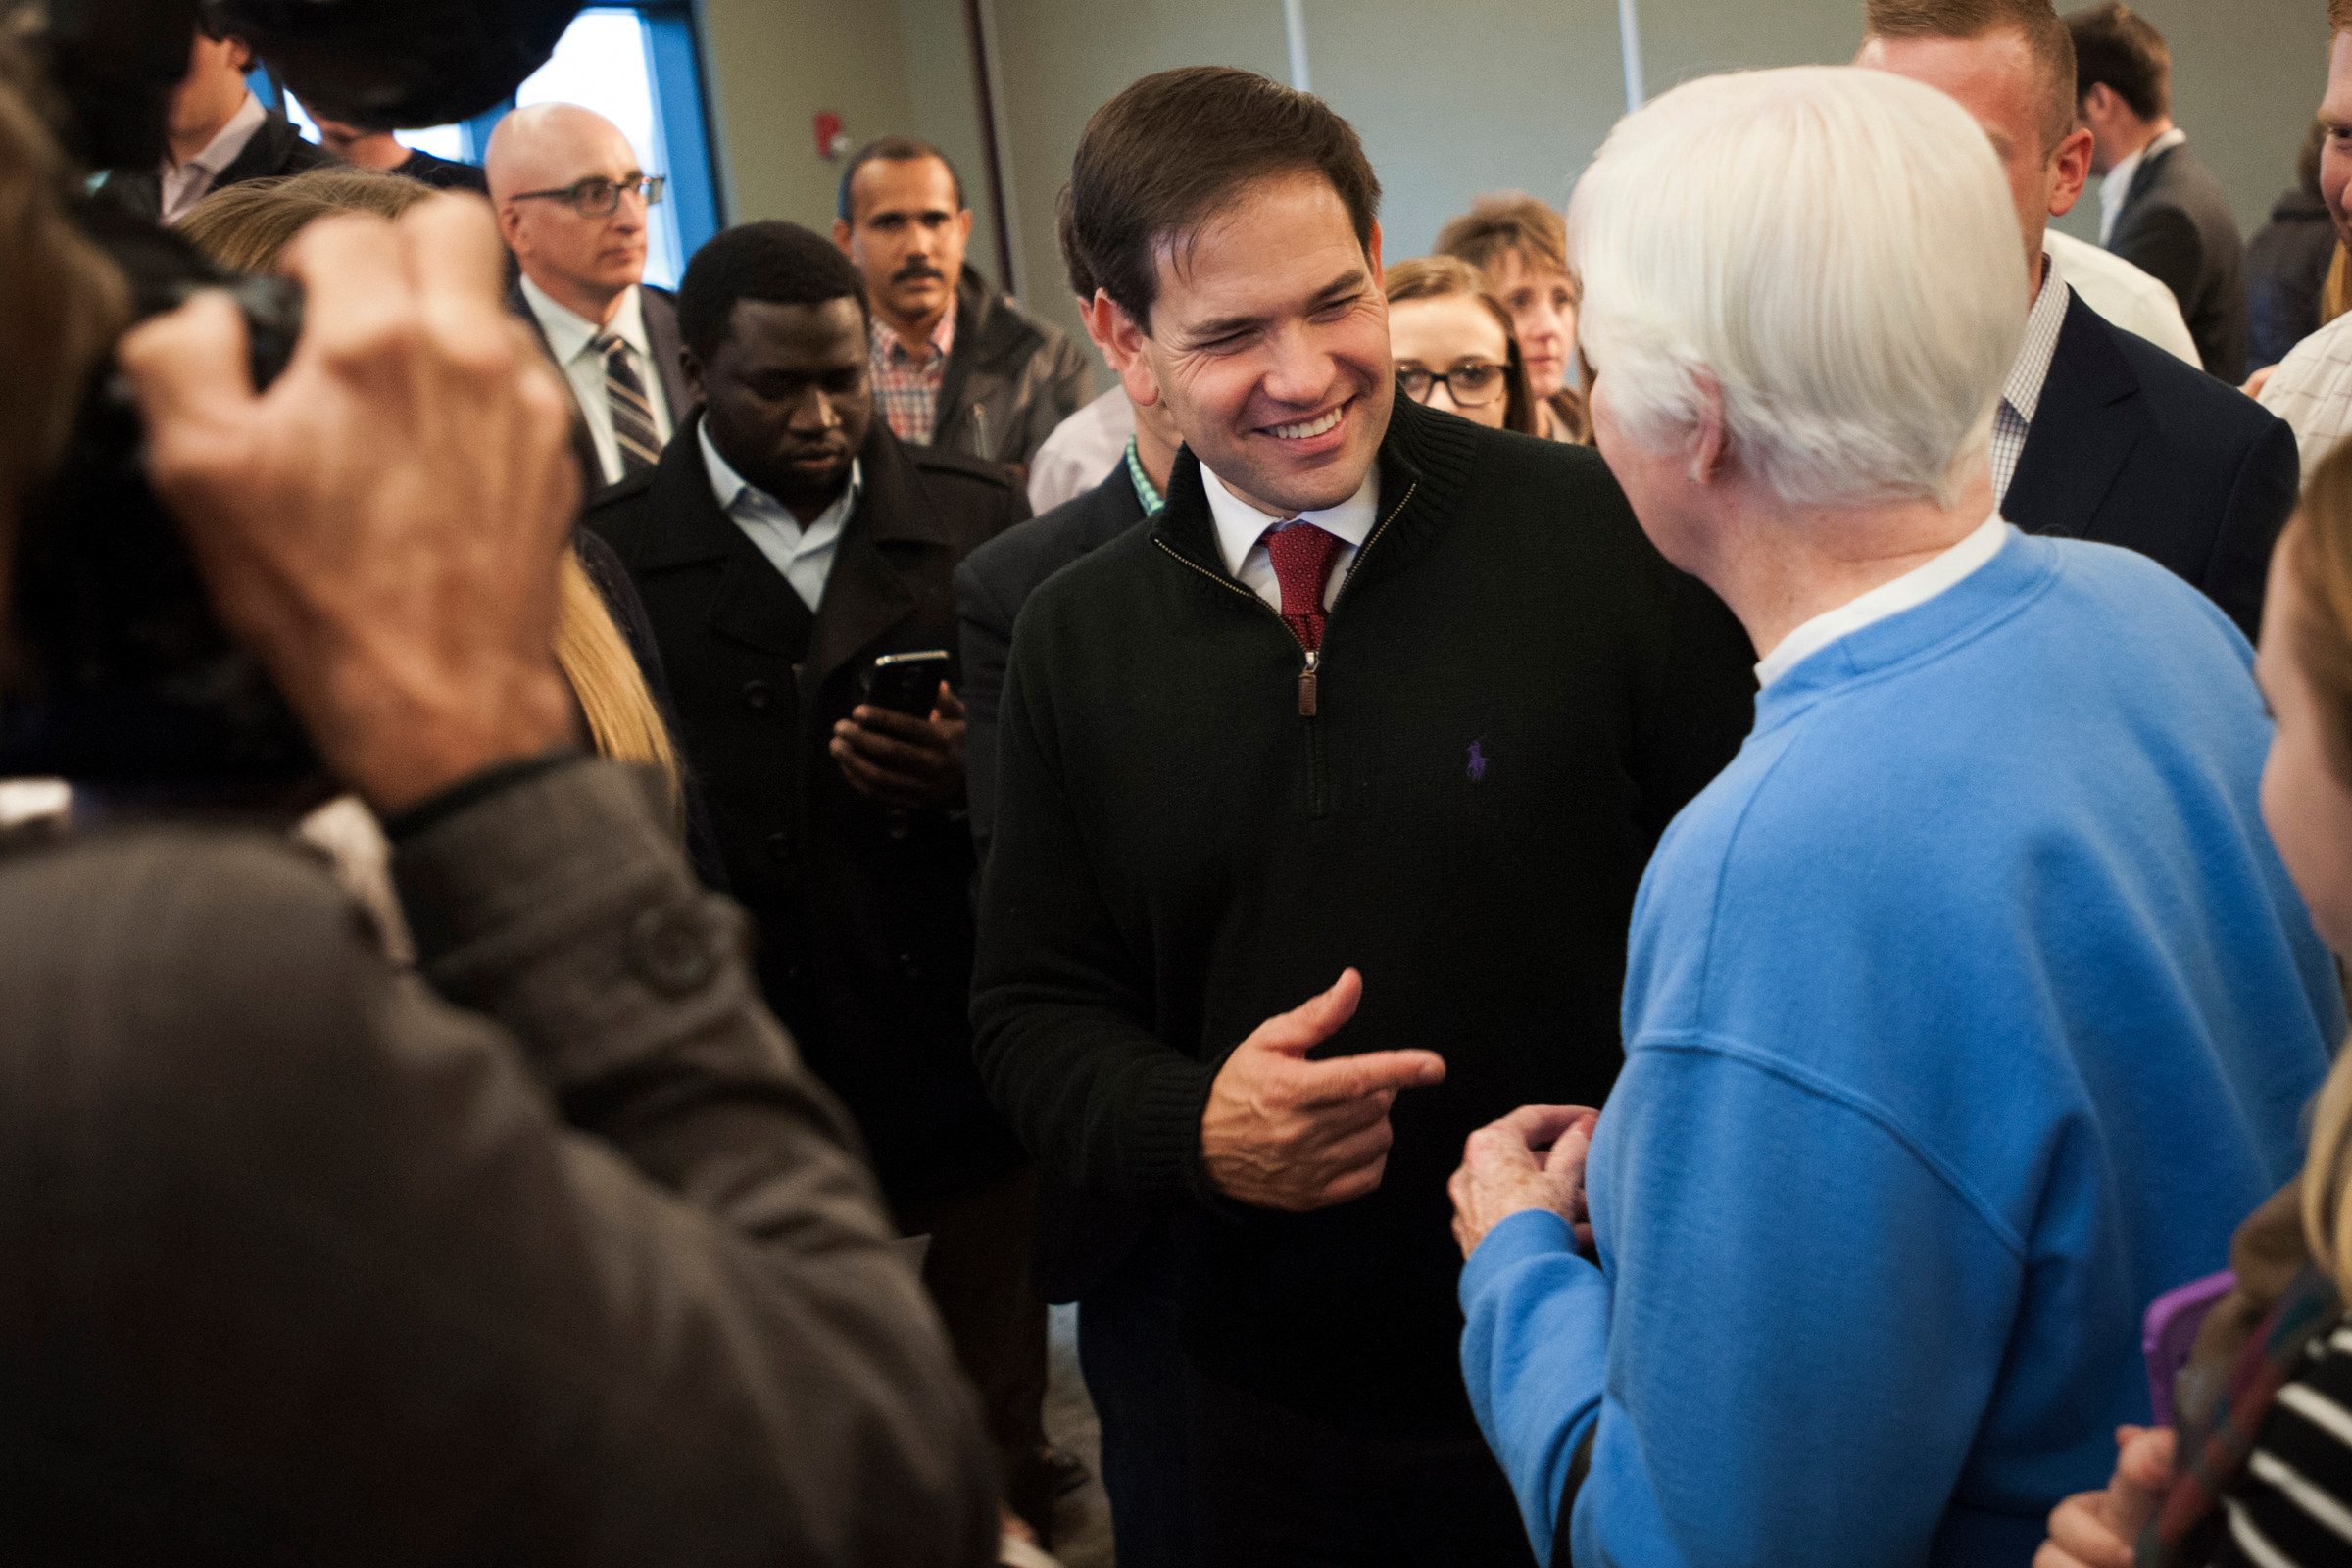 Republican presidential candidate Sen. Marco Rubio greets a supporter after speaking at an event in Sioux City, Iowa.